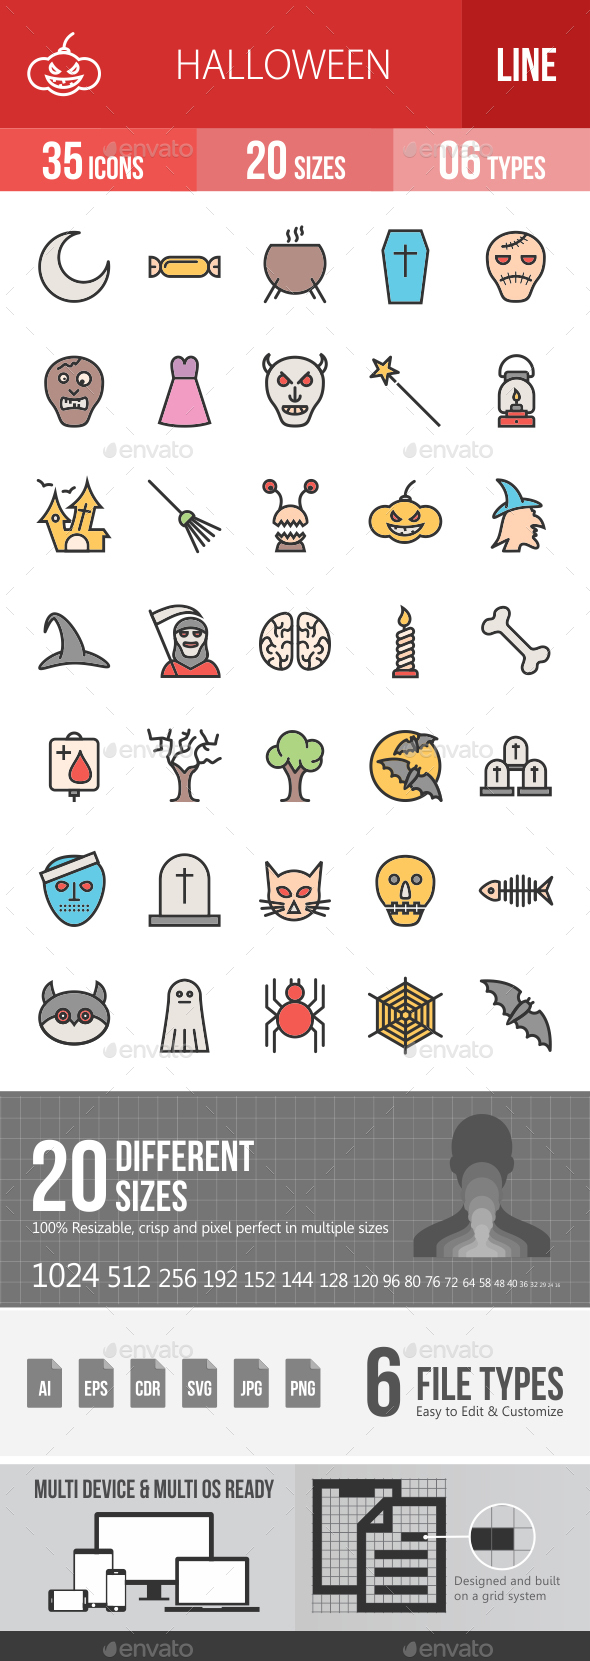 Halloween Filled Line Icons - Icons